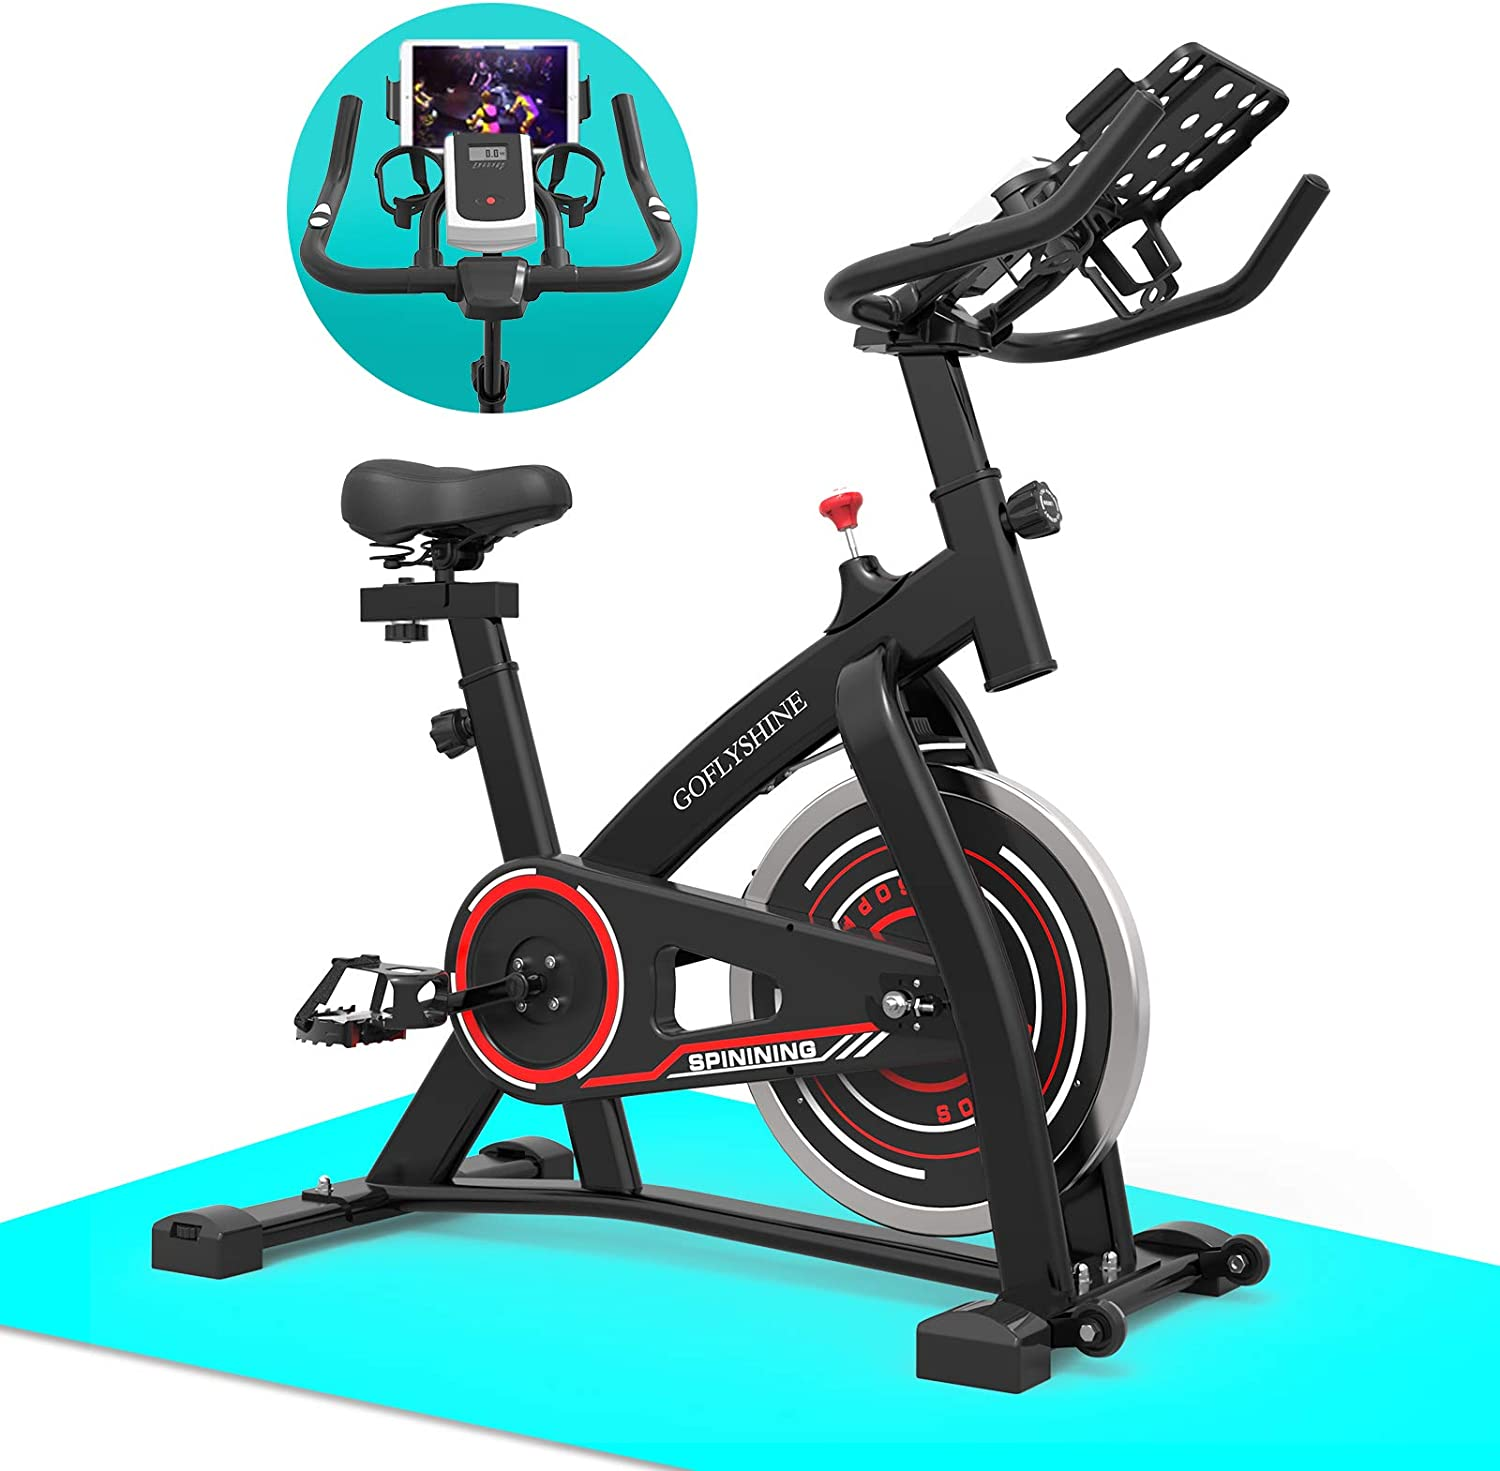 GOFLYSHINE Exercise Bike, Indoor Cycling Bike Stationary Bikes, Spin Bike for Home Cardio Bike, Workout Bike with 35 LBS Flywheel